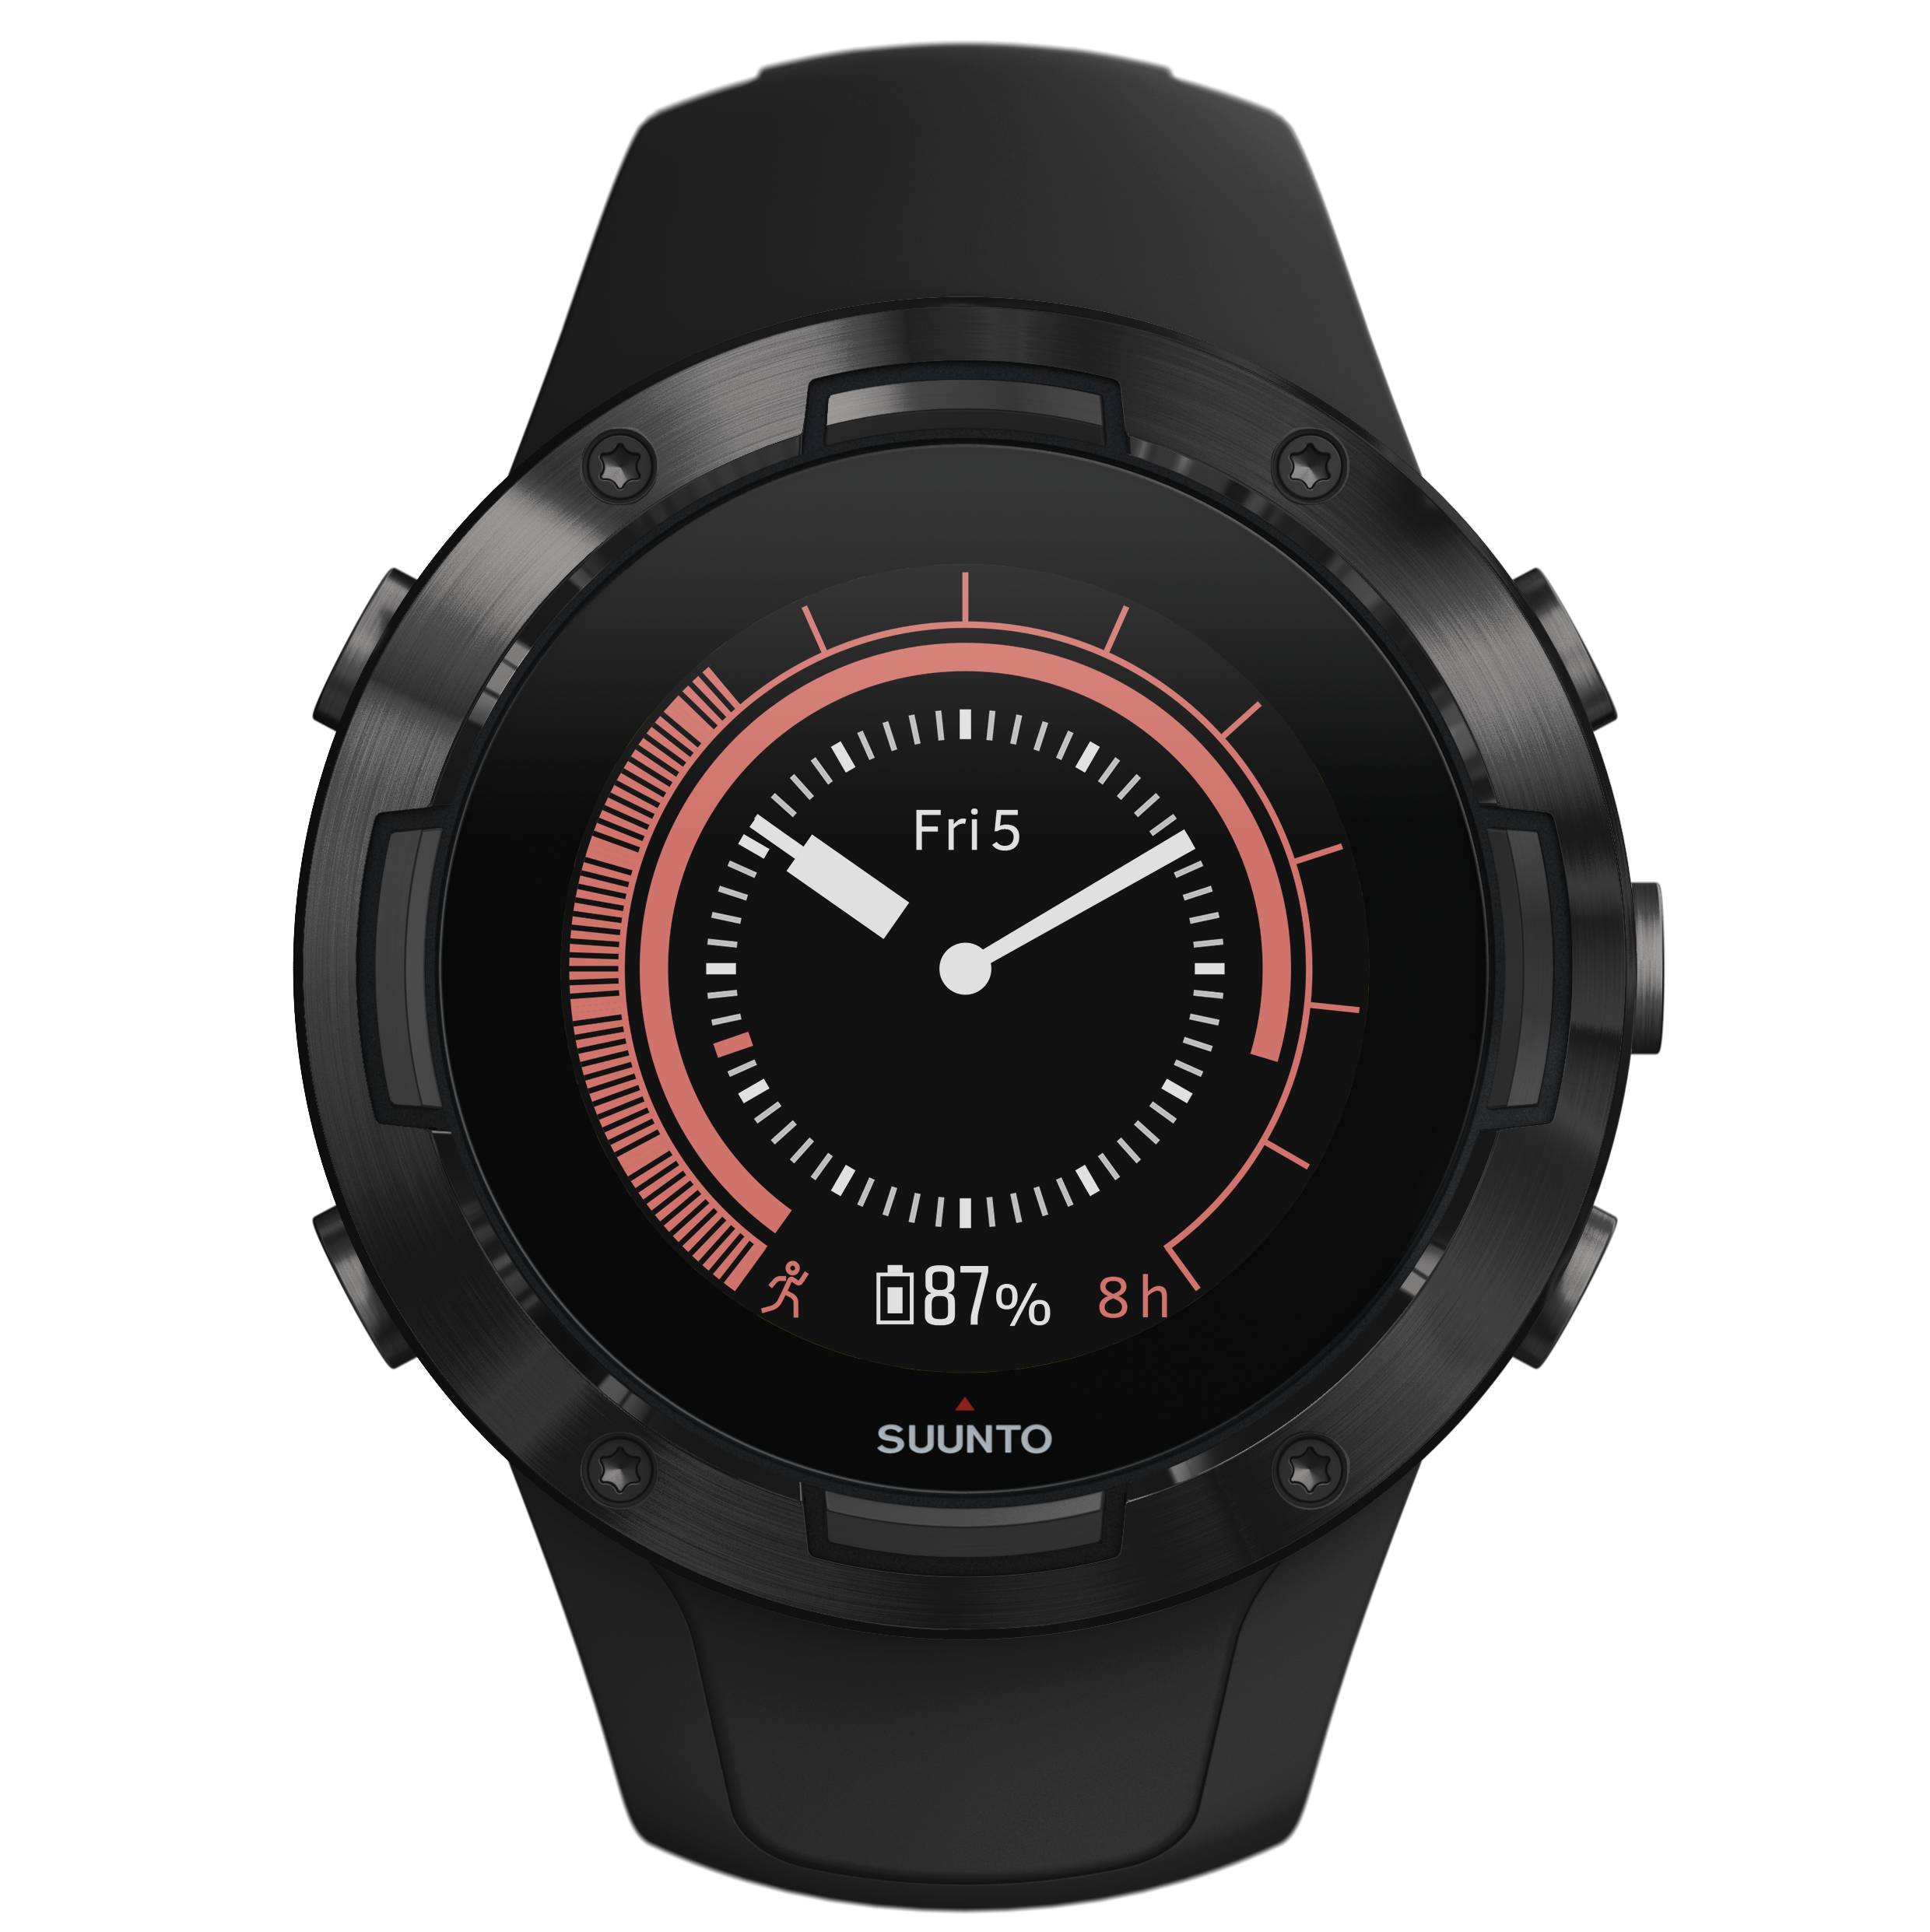 The Suunto 5 Is Loaded With Features at an Affordable Price